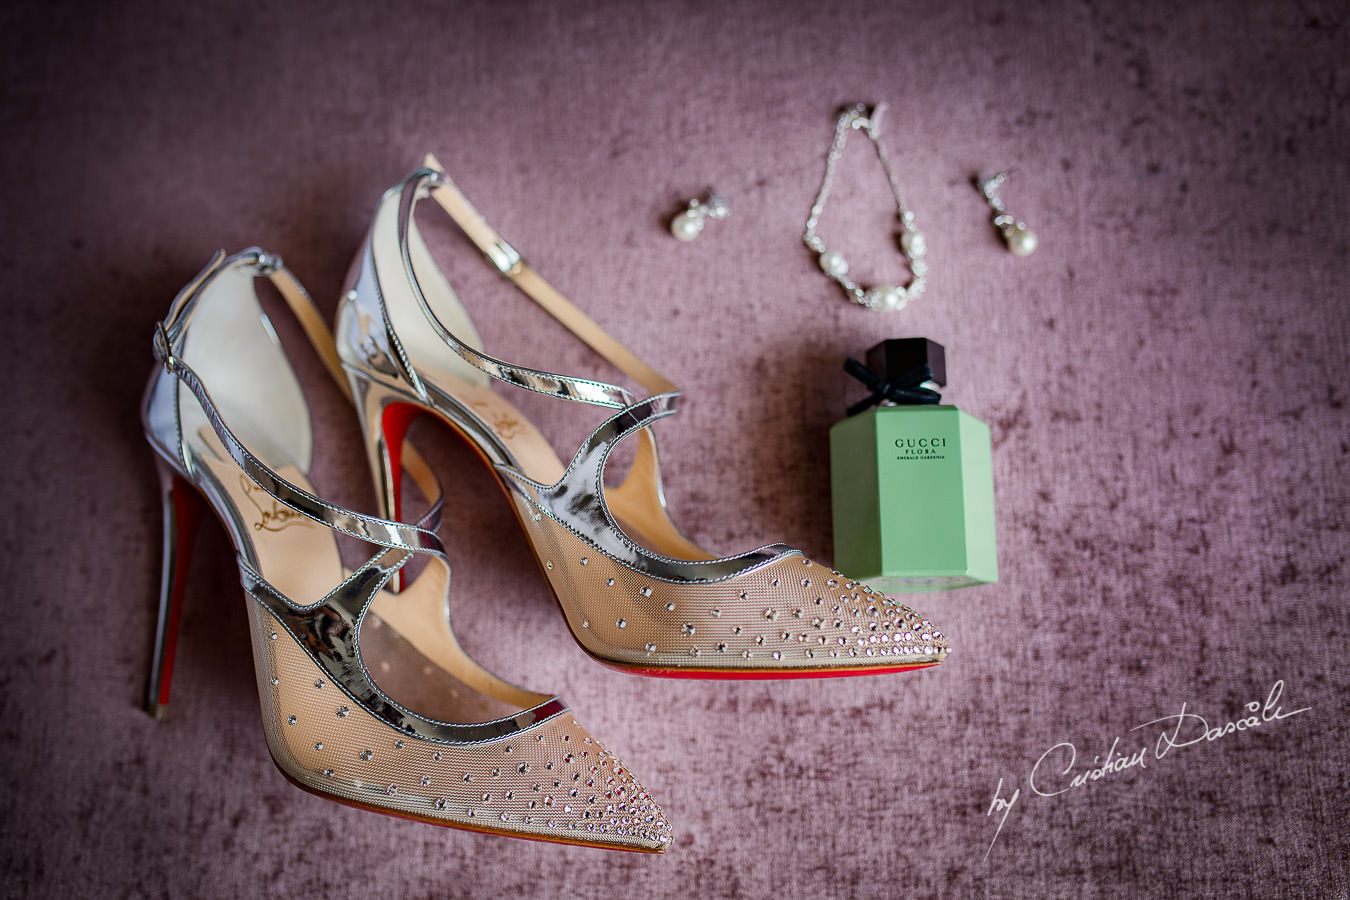 Wedding Shoes and Jewellery, captured during an Elegant Minthis Hills Wedding, in Paphos, Cyprus.